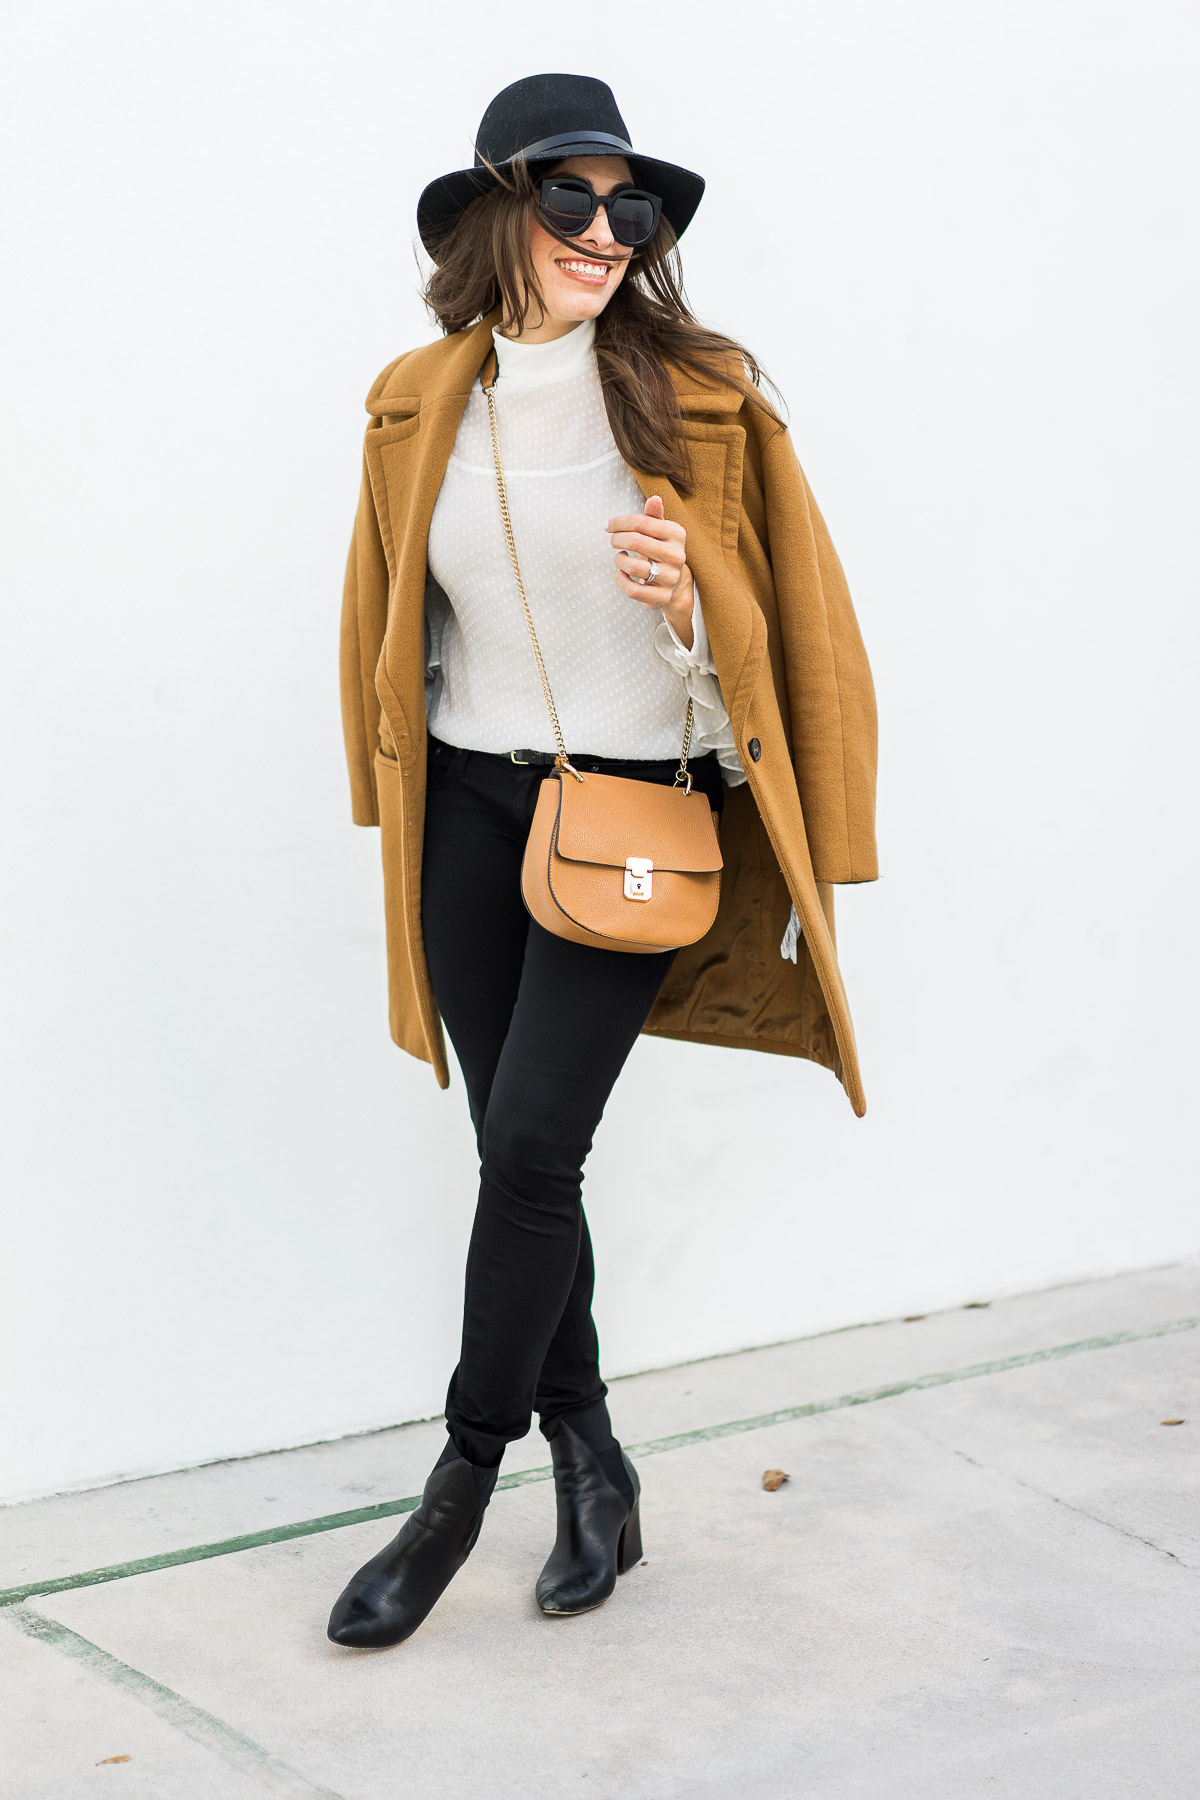 Amanda from A Glam Lifestyle wears oversized lapel camel coat by Zara with sheer white blouse by Chelsea28 and Chloe Drew dupe bag